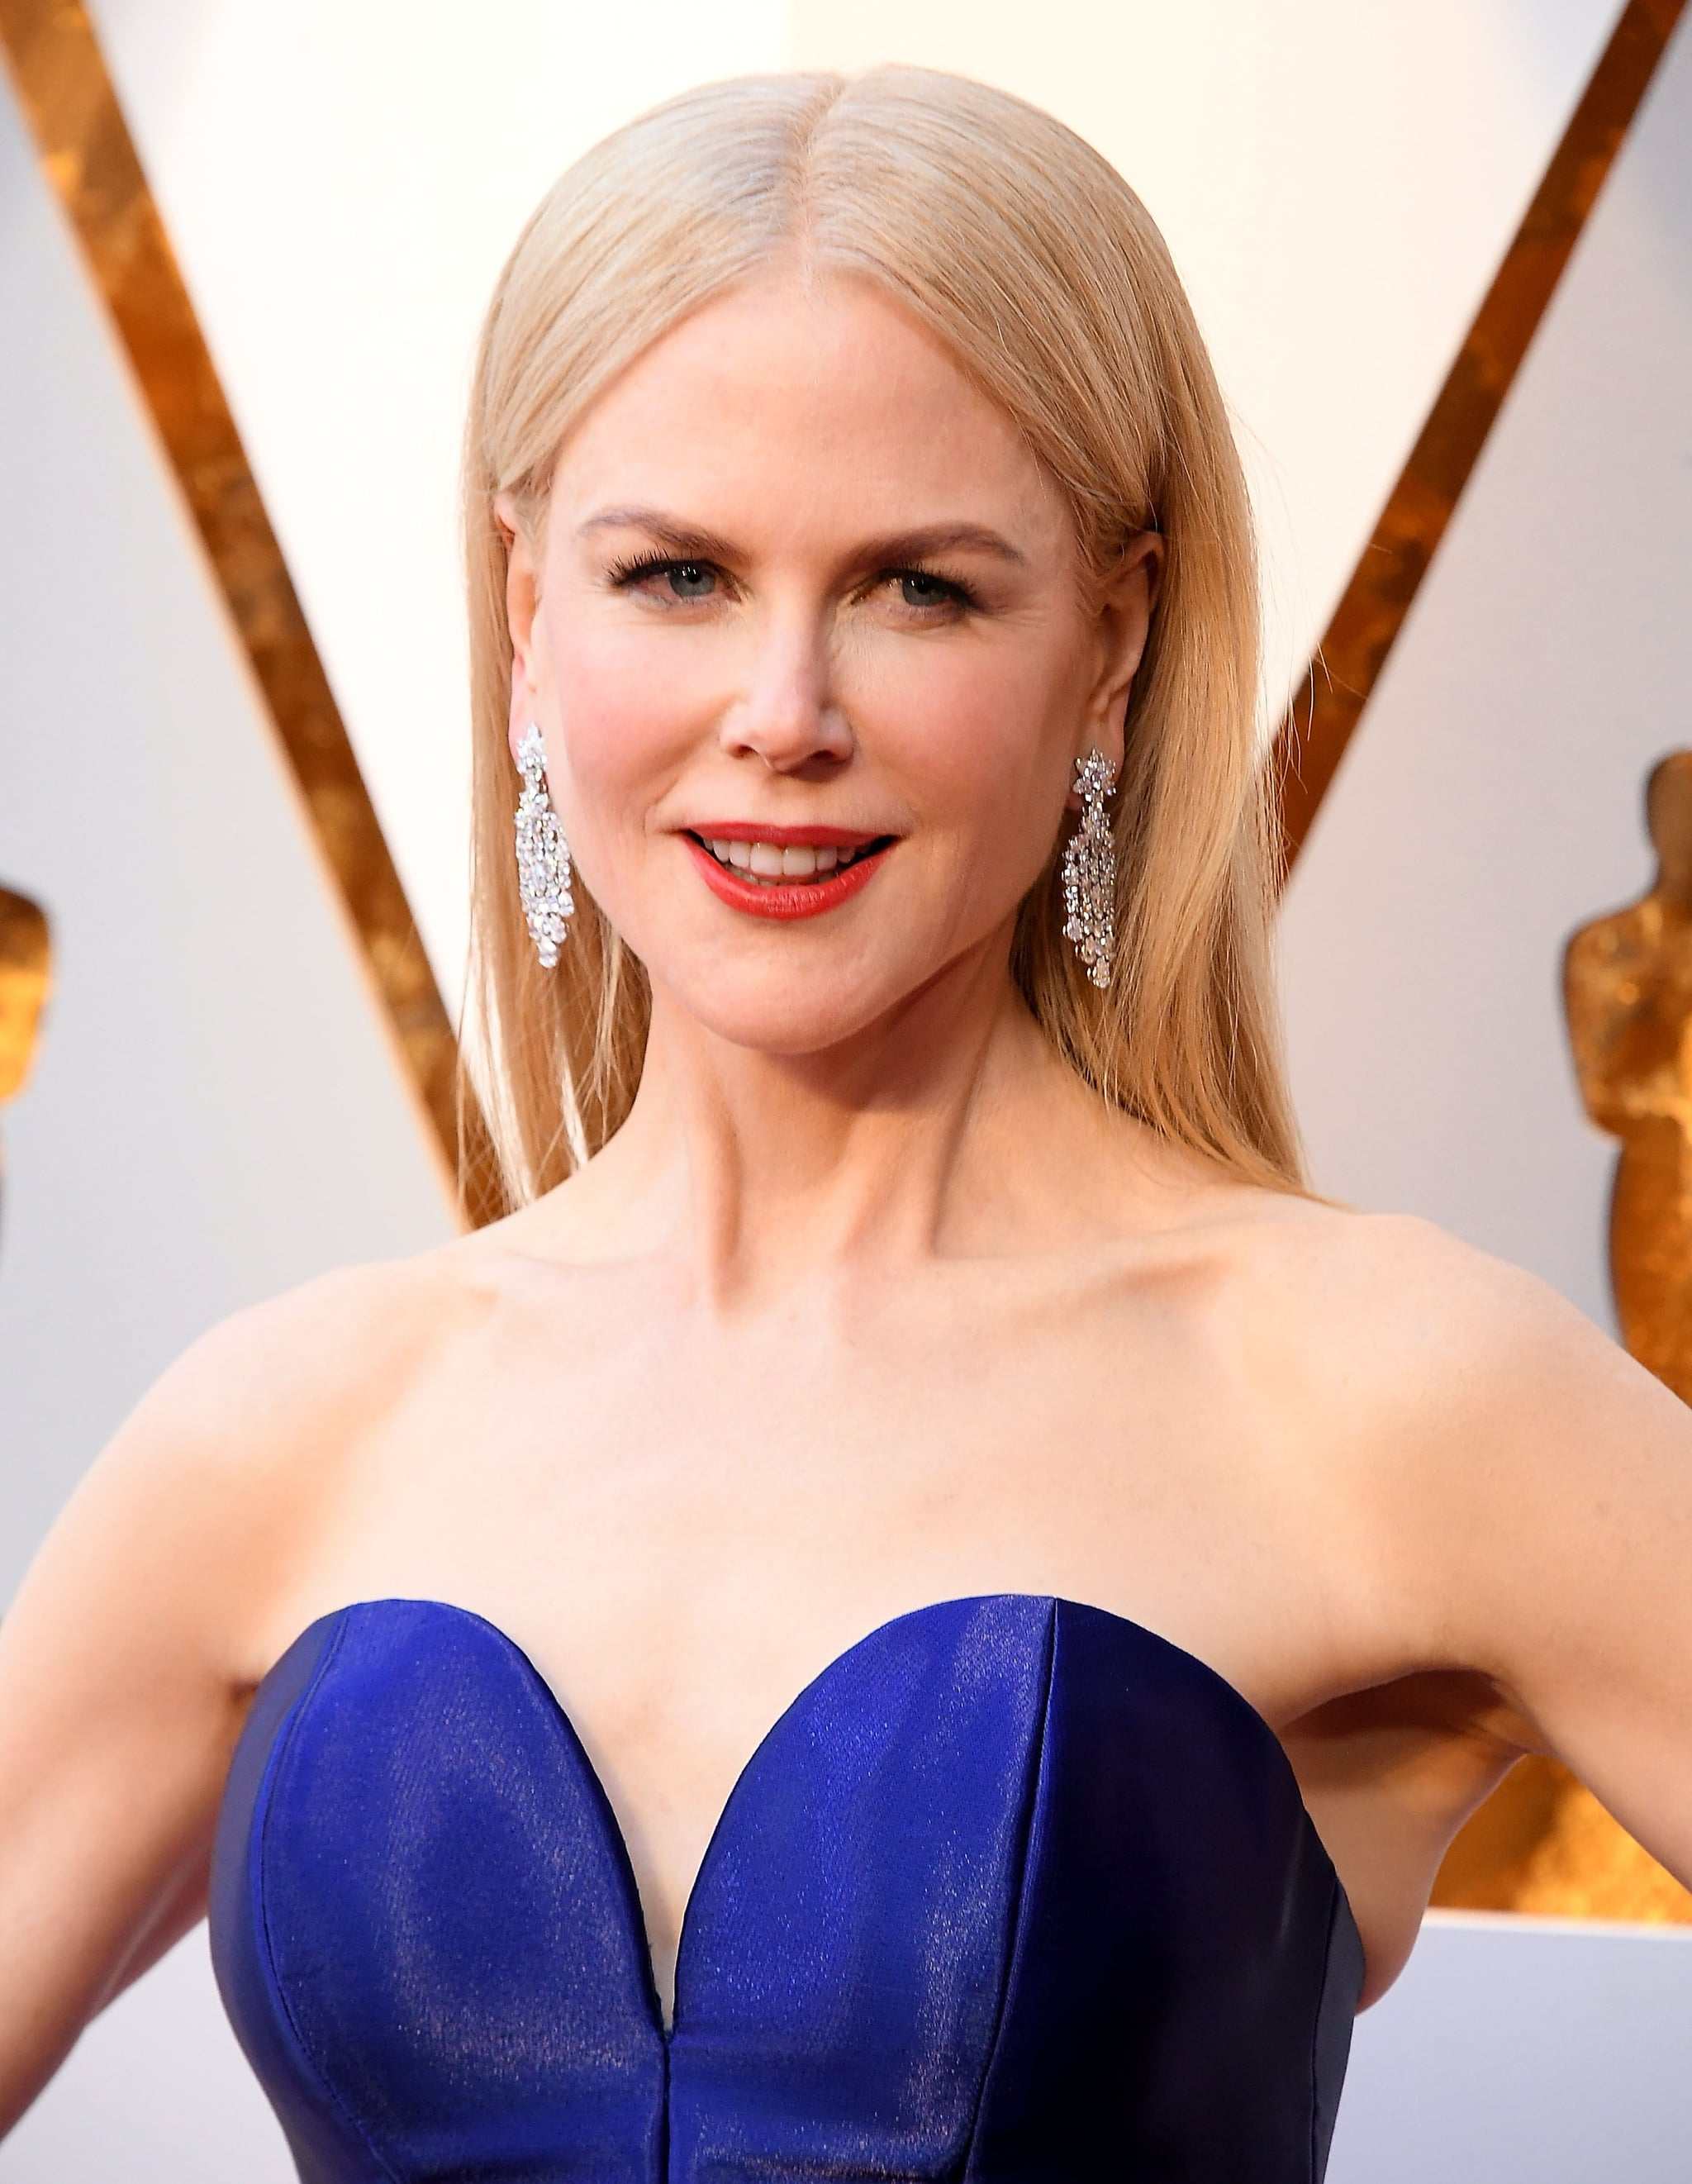 HOLLYWOOD, CA - MARCH 04:  Nicole Kidman arrives at the 90th Annual Academy Awards at Hollywood & Highland Center on March 4, 2018 in Hollywood, California.  (Photo by Steve Granitz/WireImage)